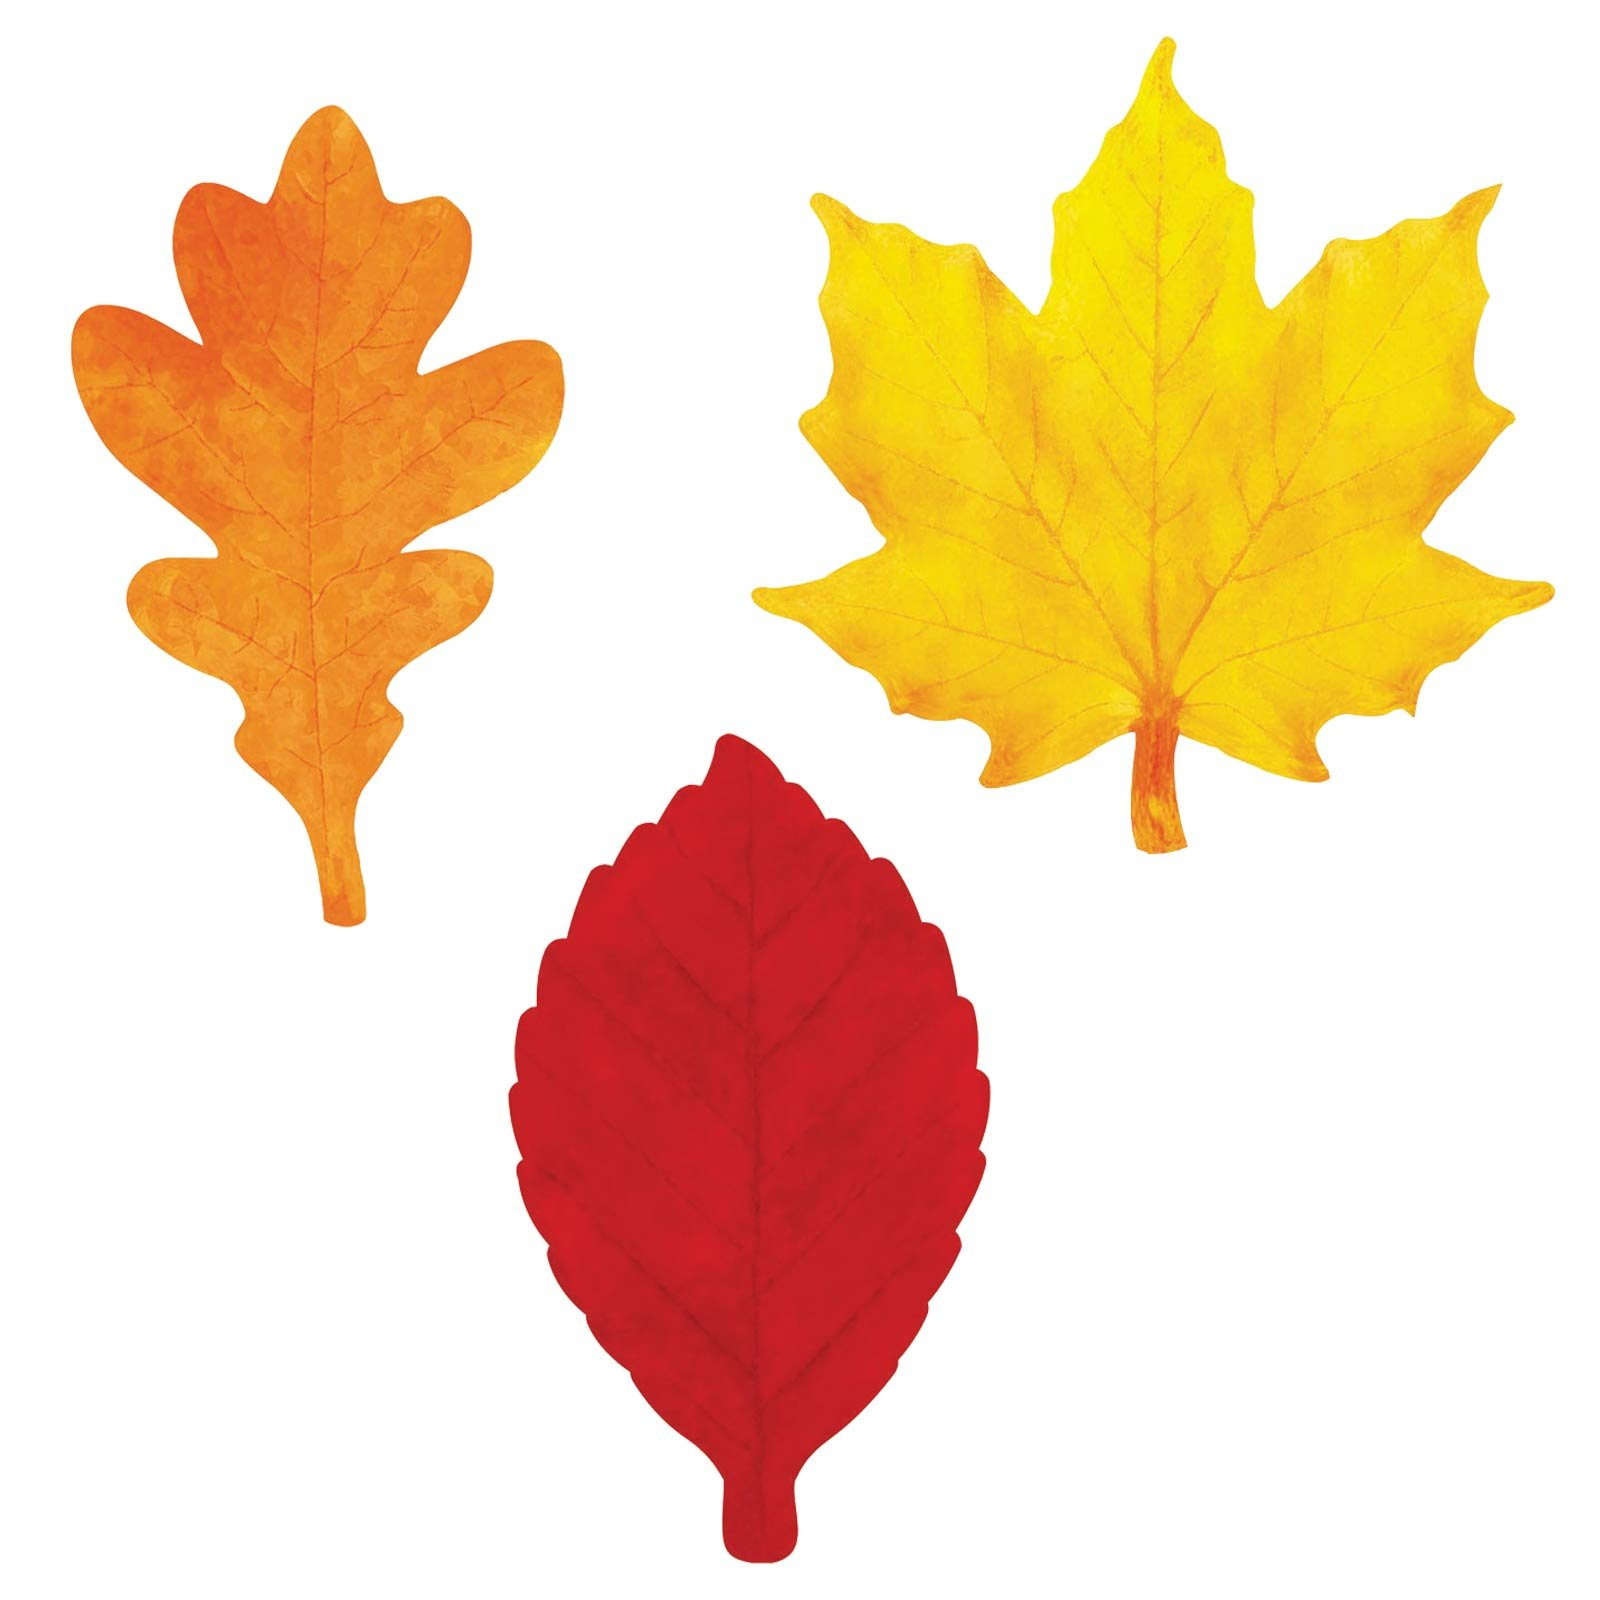 hight resolution of 1600x1600 leaves clip art free images download